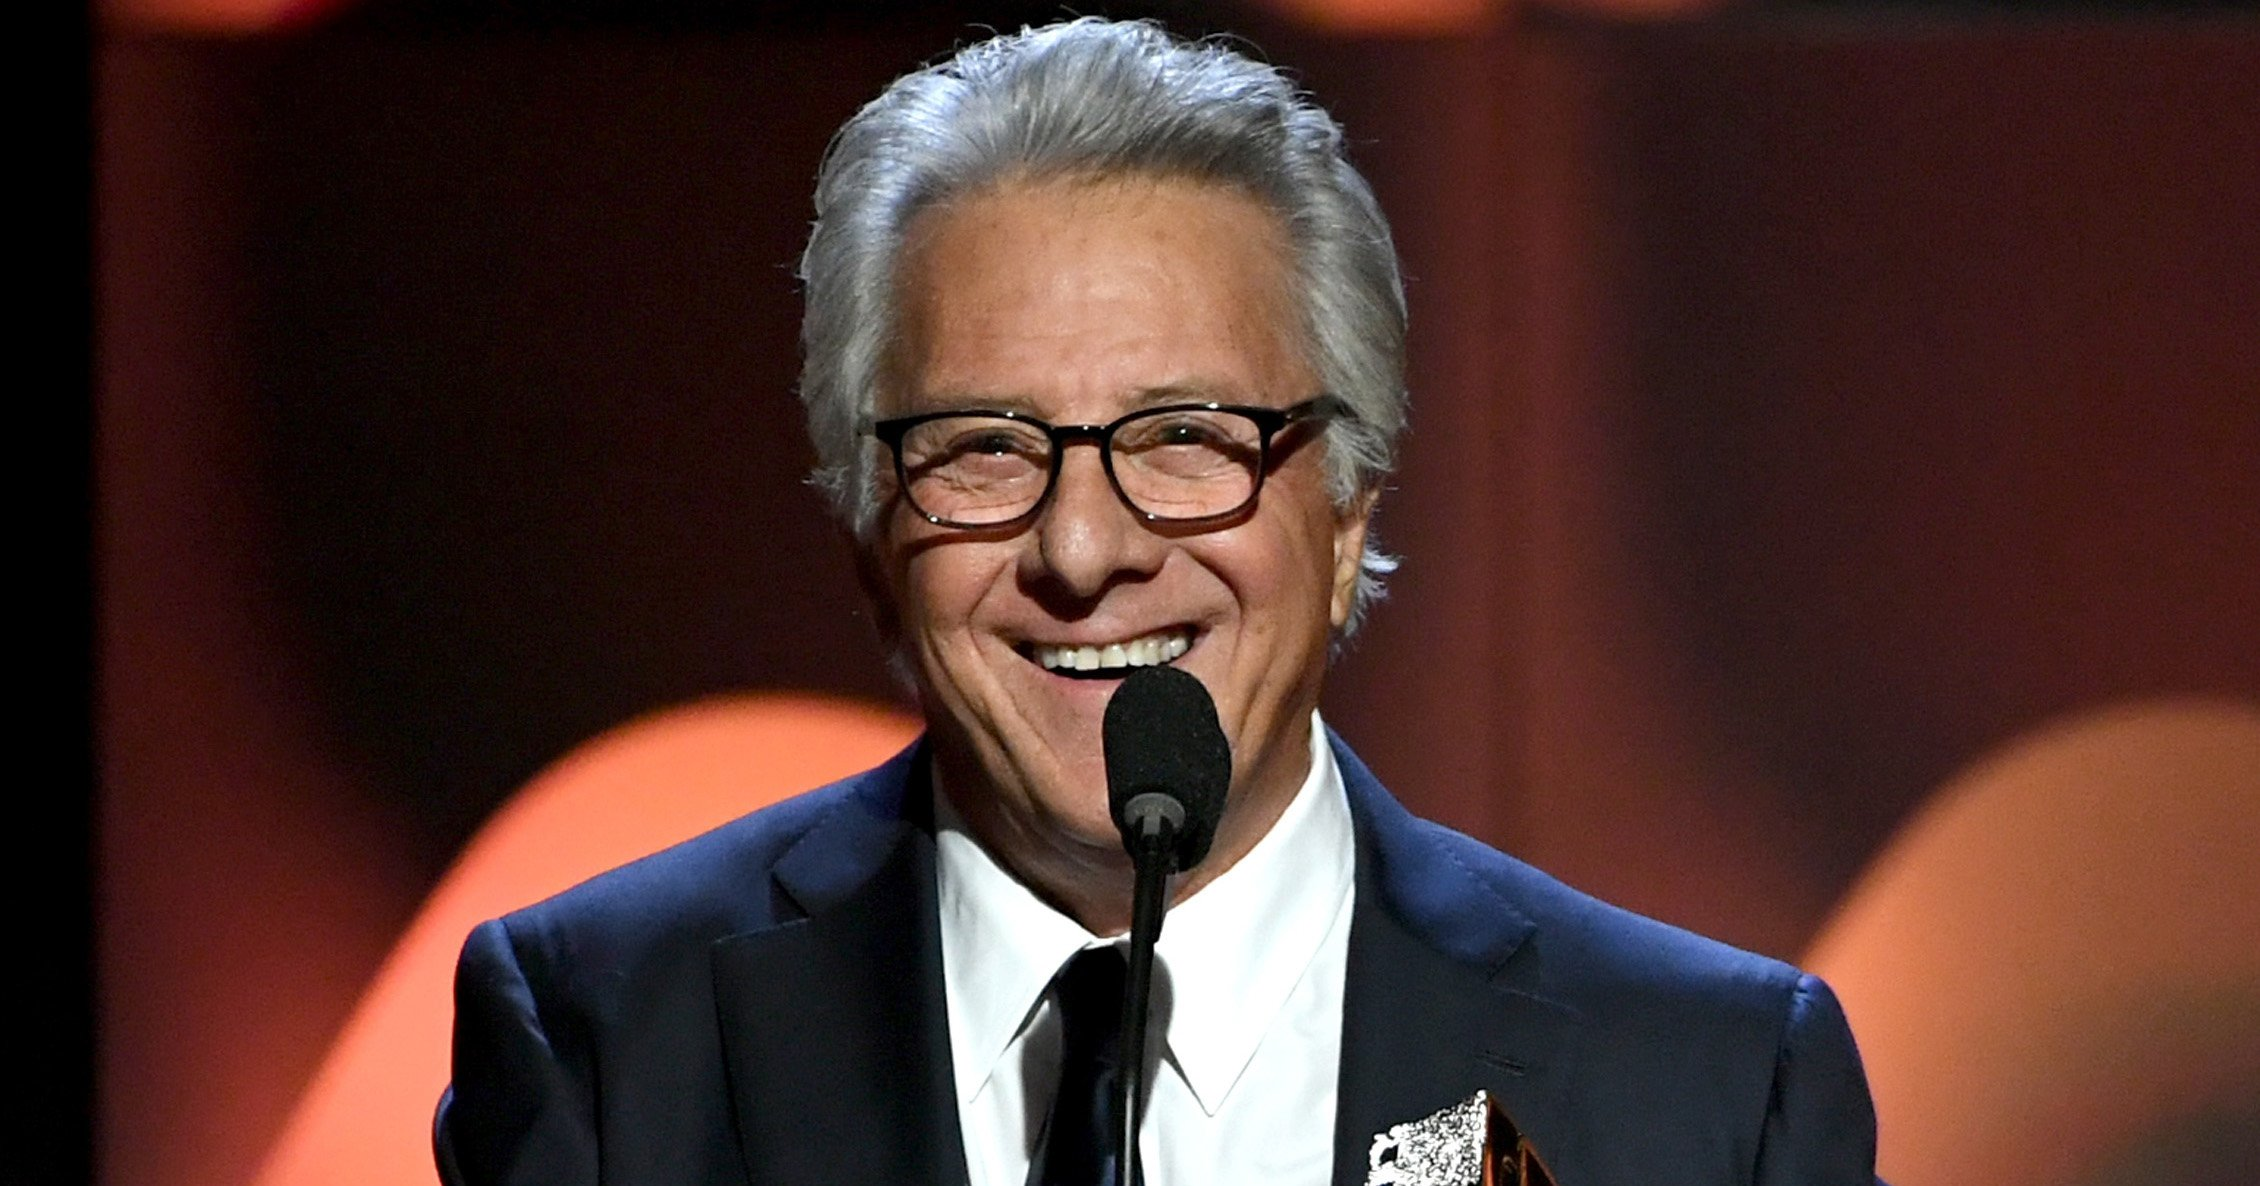 Dustin Hoffman all smiles as he makes first public appearance since sexual harassment claims